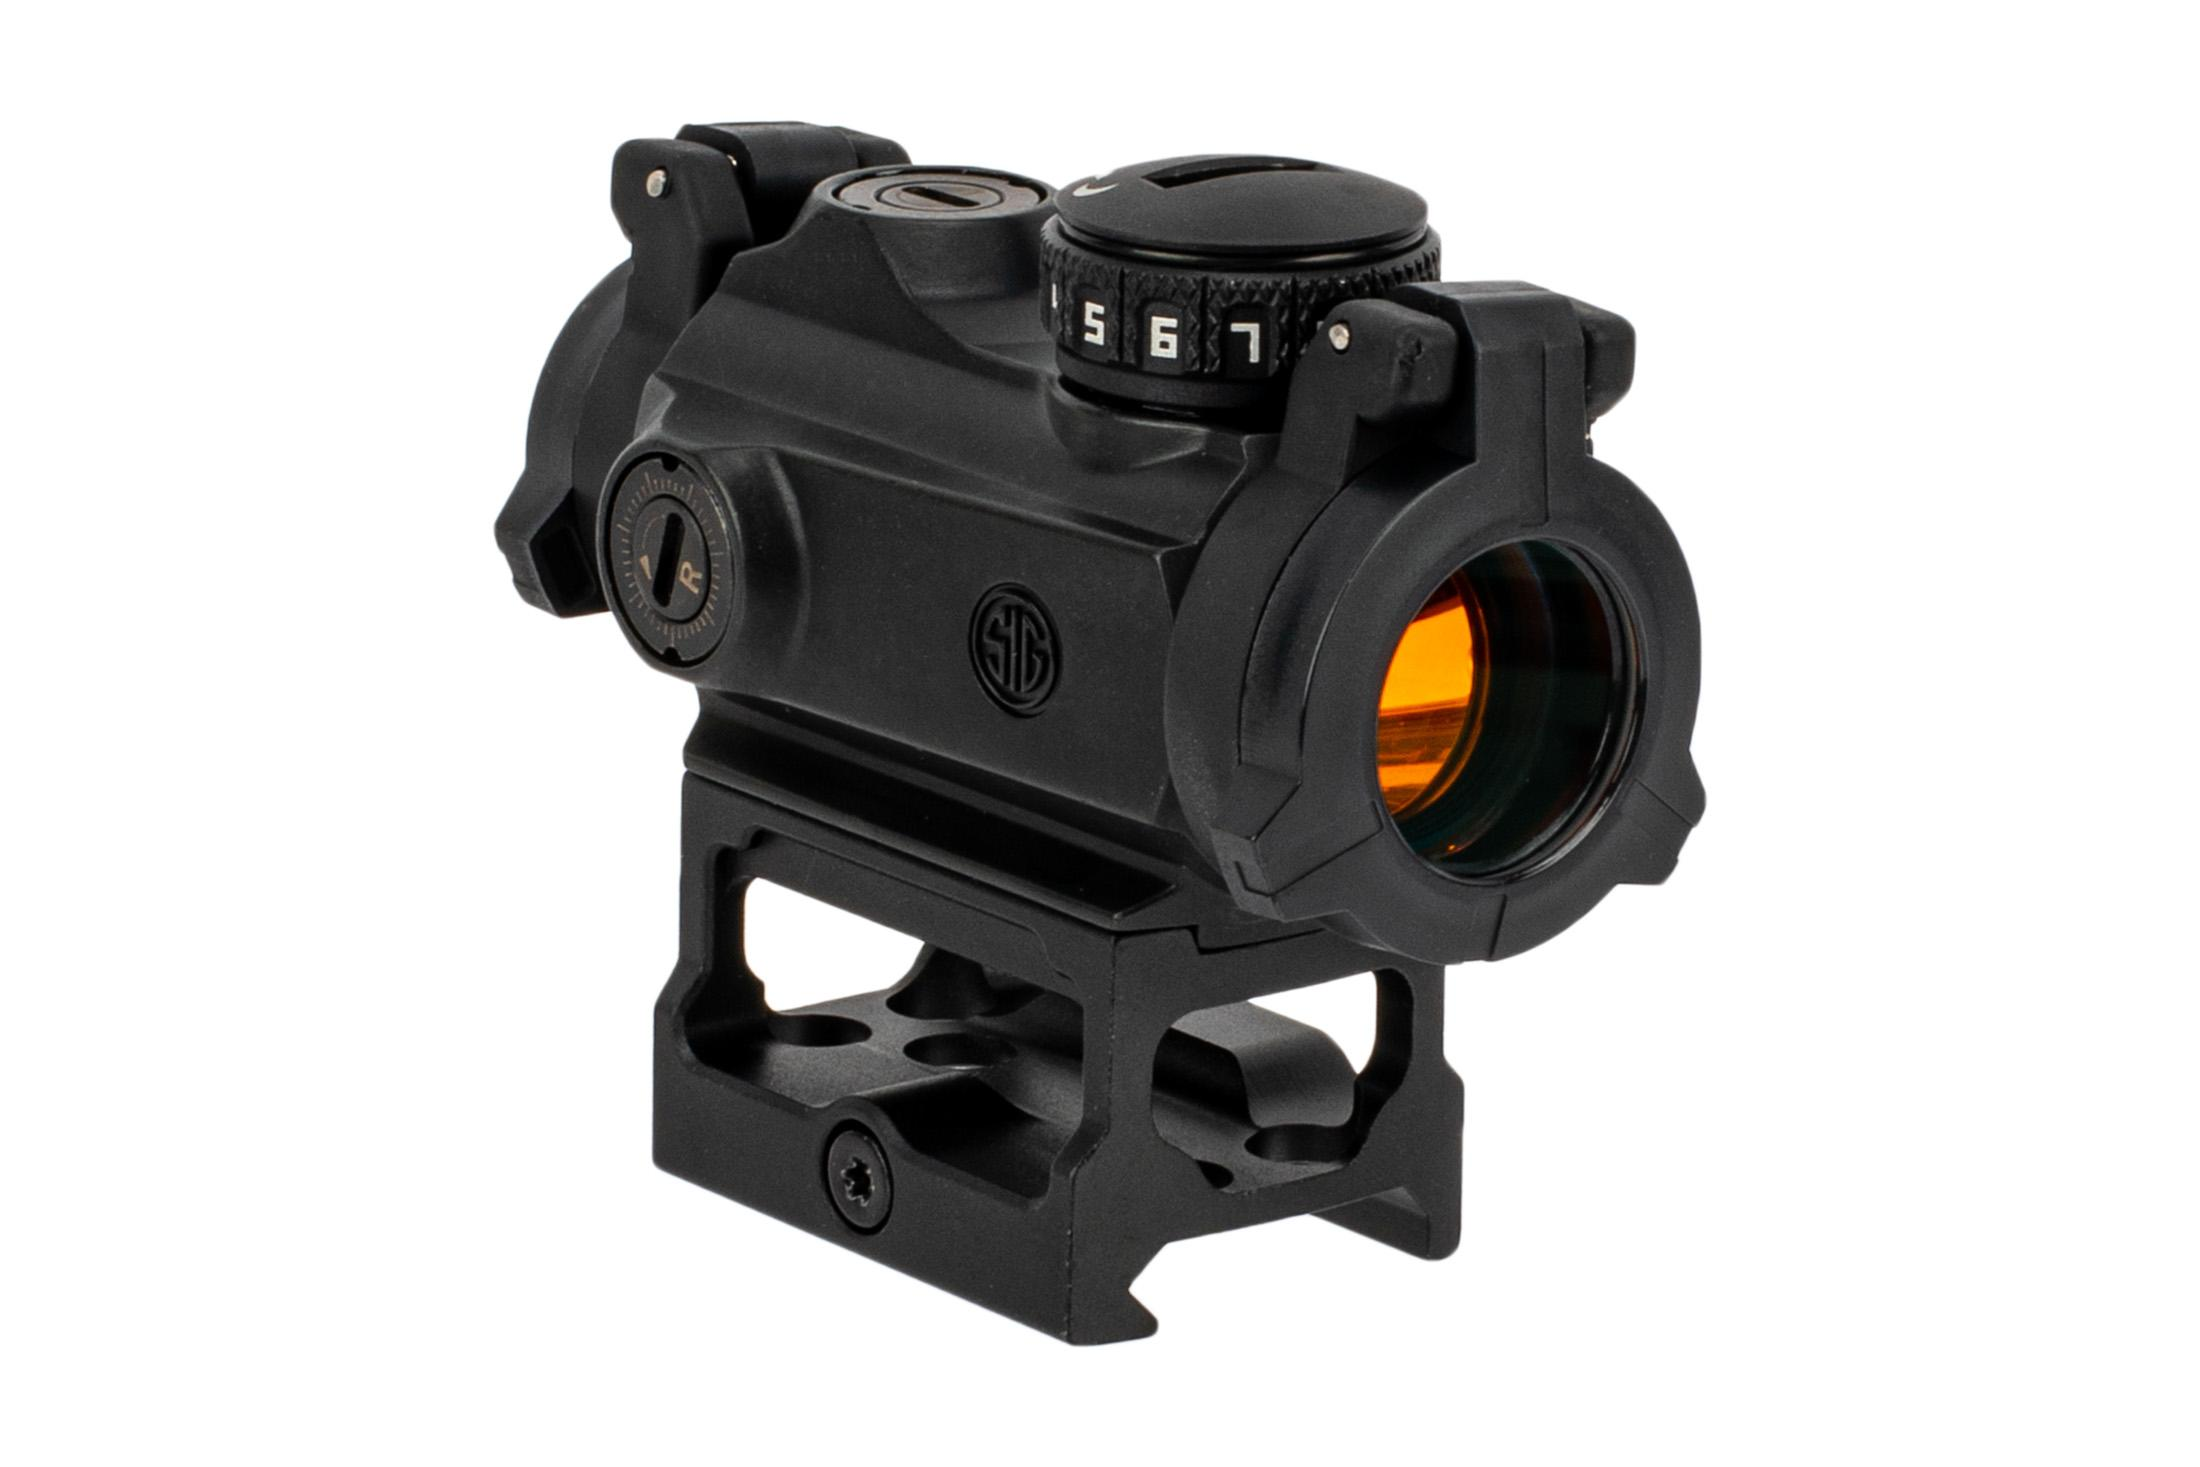 SIG Sauer ROMEO-MSR Red Dot Sight - 2 MOA